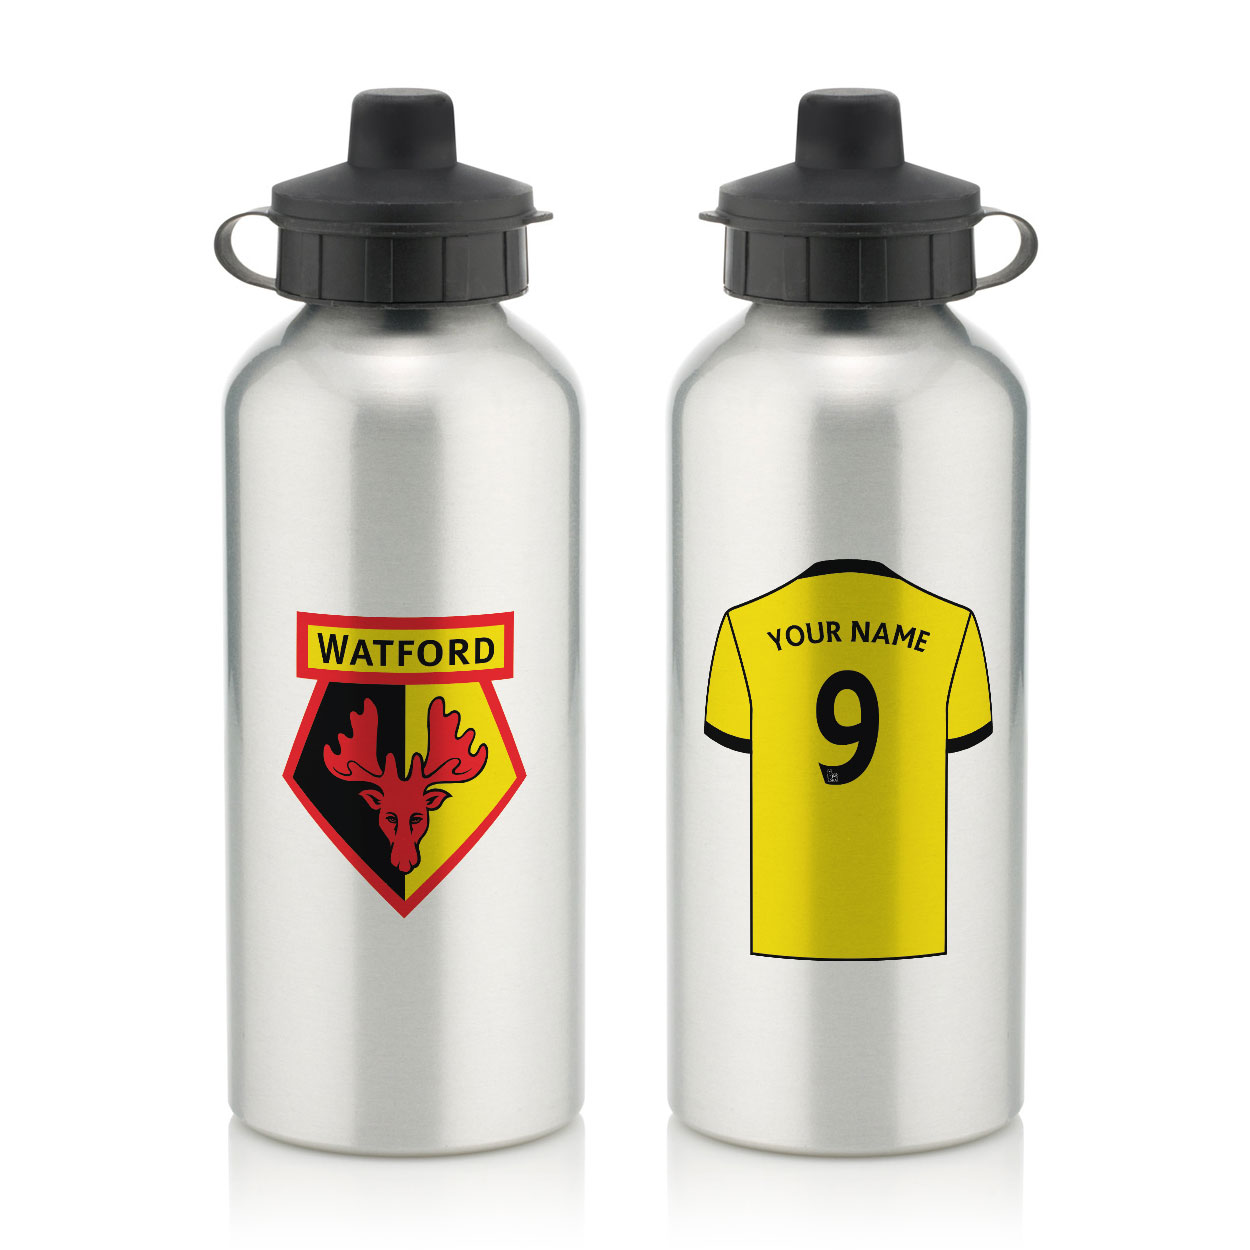 Watford FC Aluminium Water Bottle